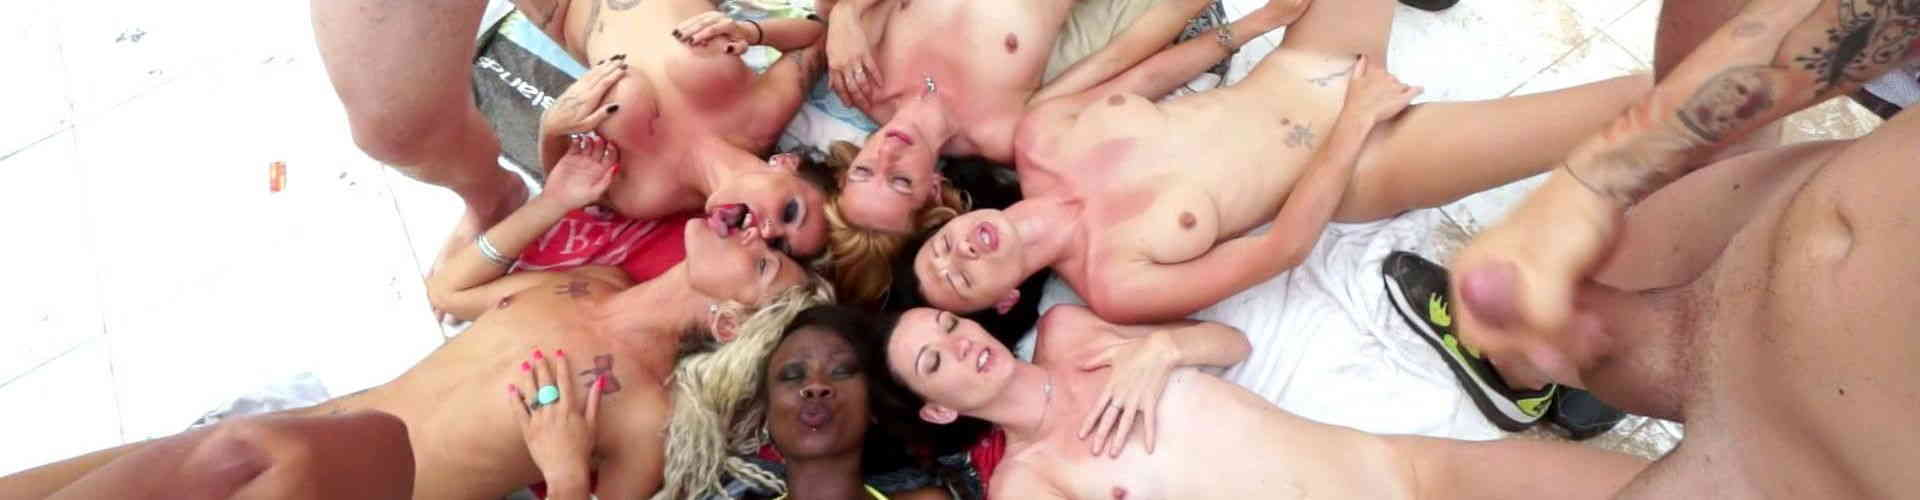 Porn video : Culanta : the total orgy !